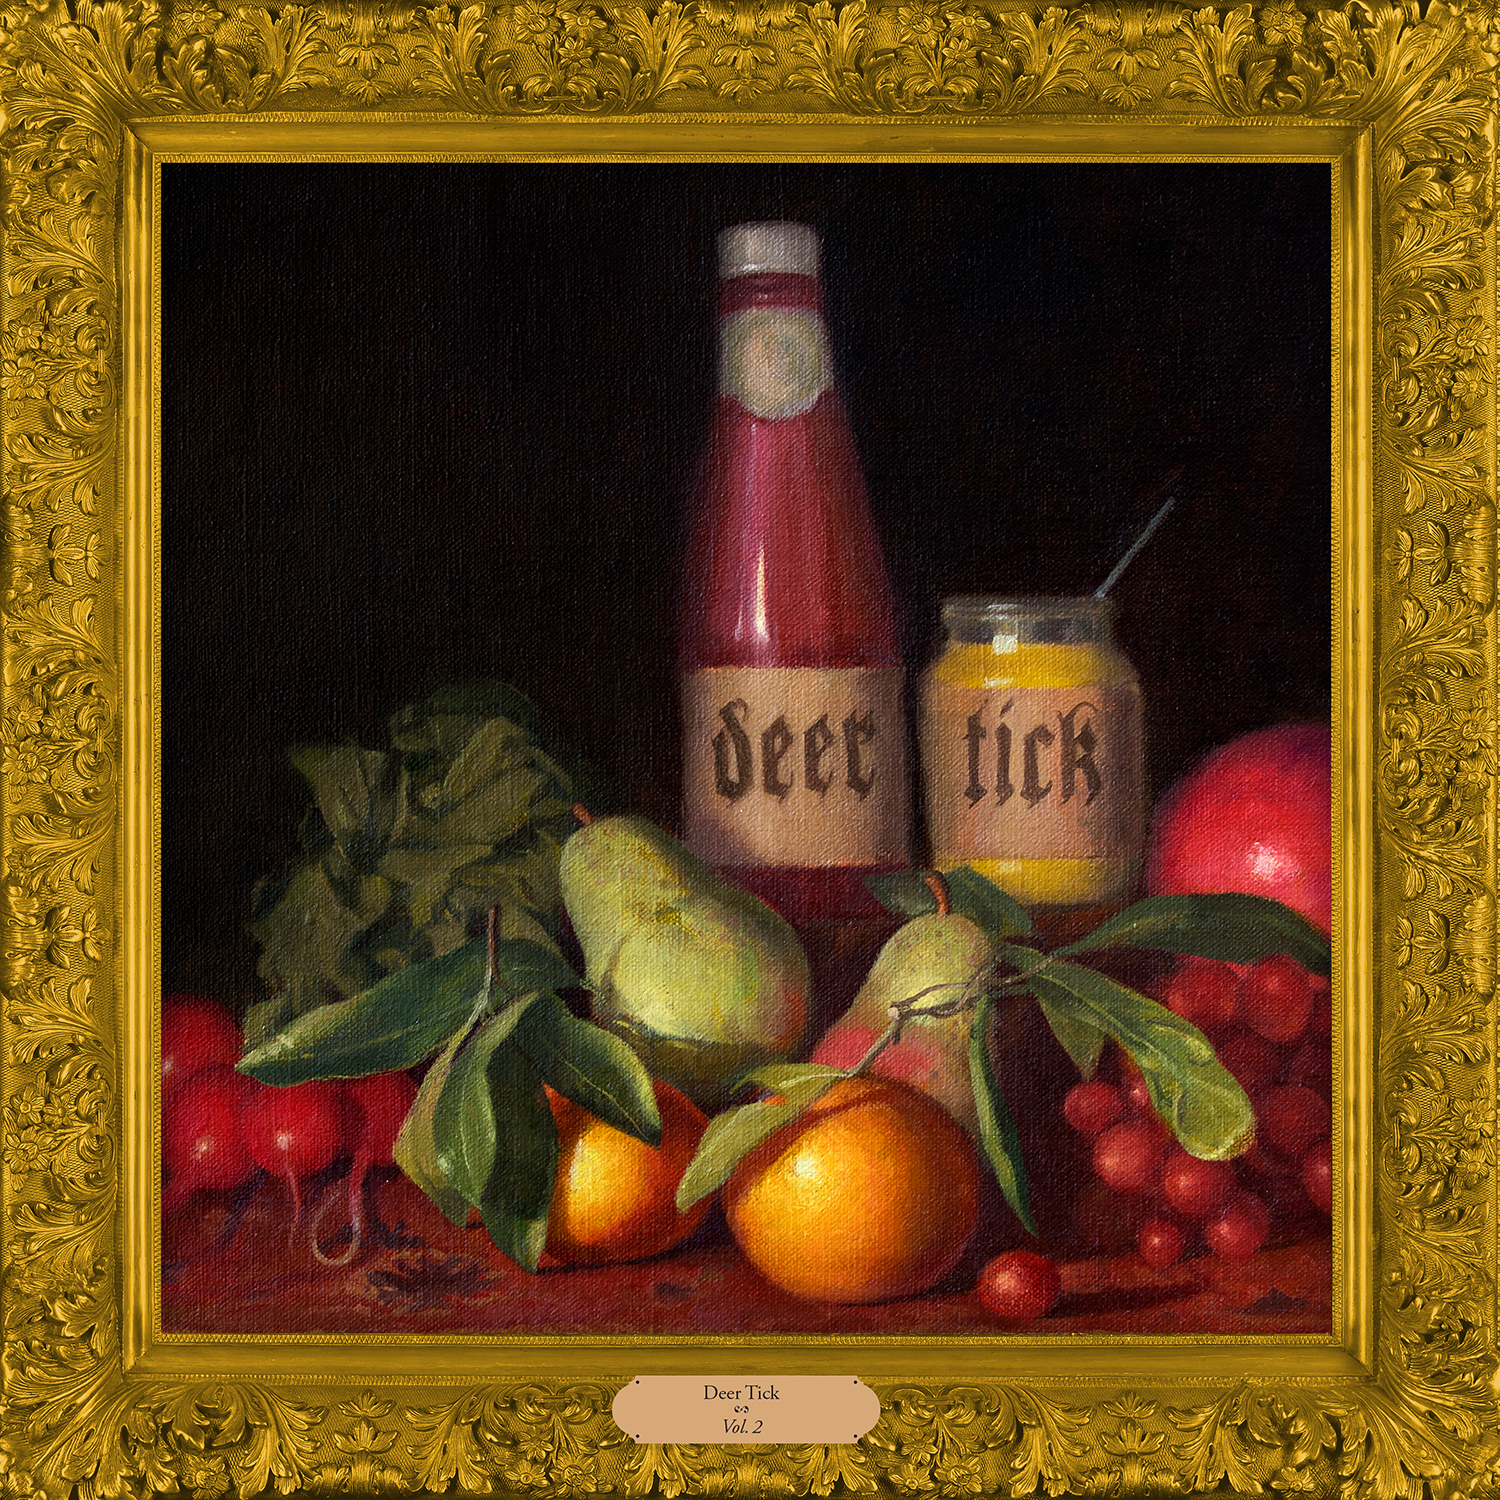 deer tick vol 2 1500x1500 300dpi Deer Tick announce two self titled records, share Sea of Clouds and Its a Whale    listen